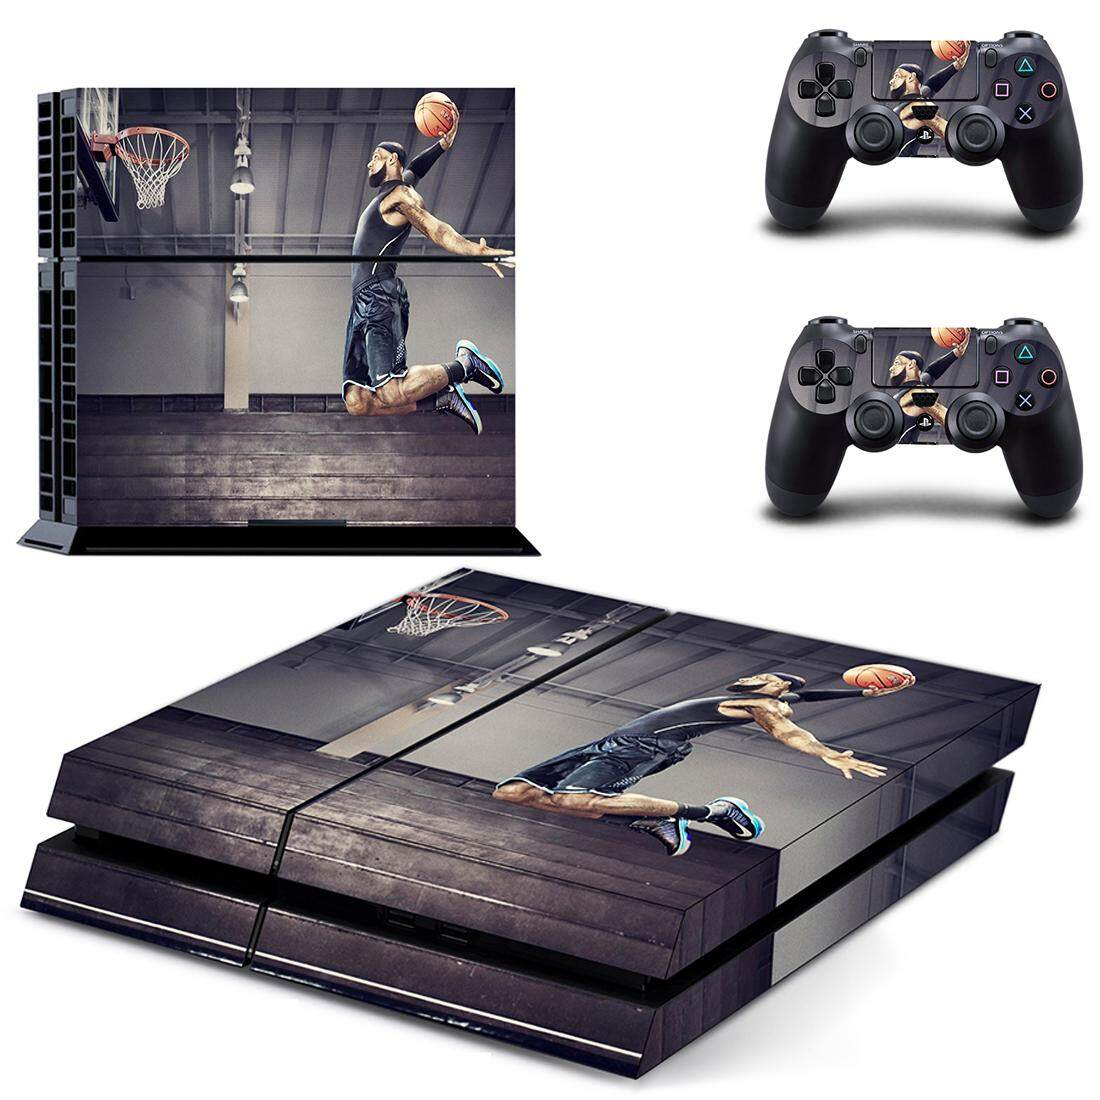 Basketball Superstar Style Decal Skin Sticker for PS4 Playstation 4 Console  Protection Film + 2Pcs Controllers Protective Cover DPTM2378